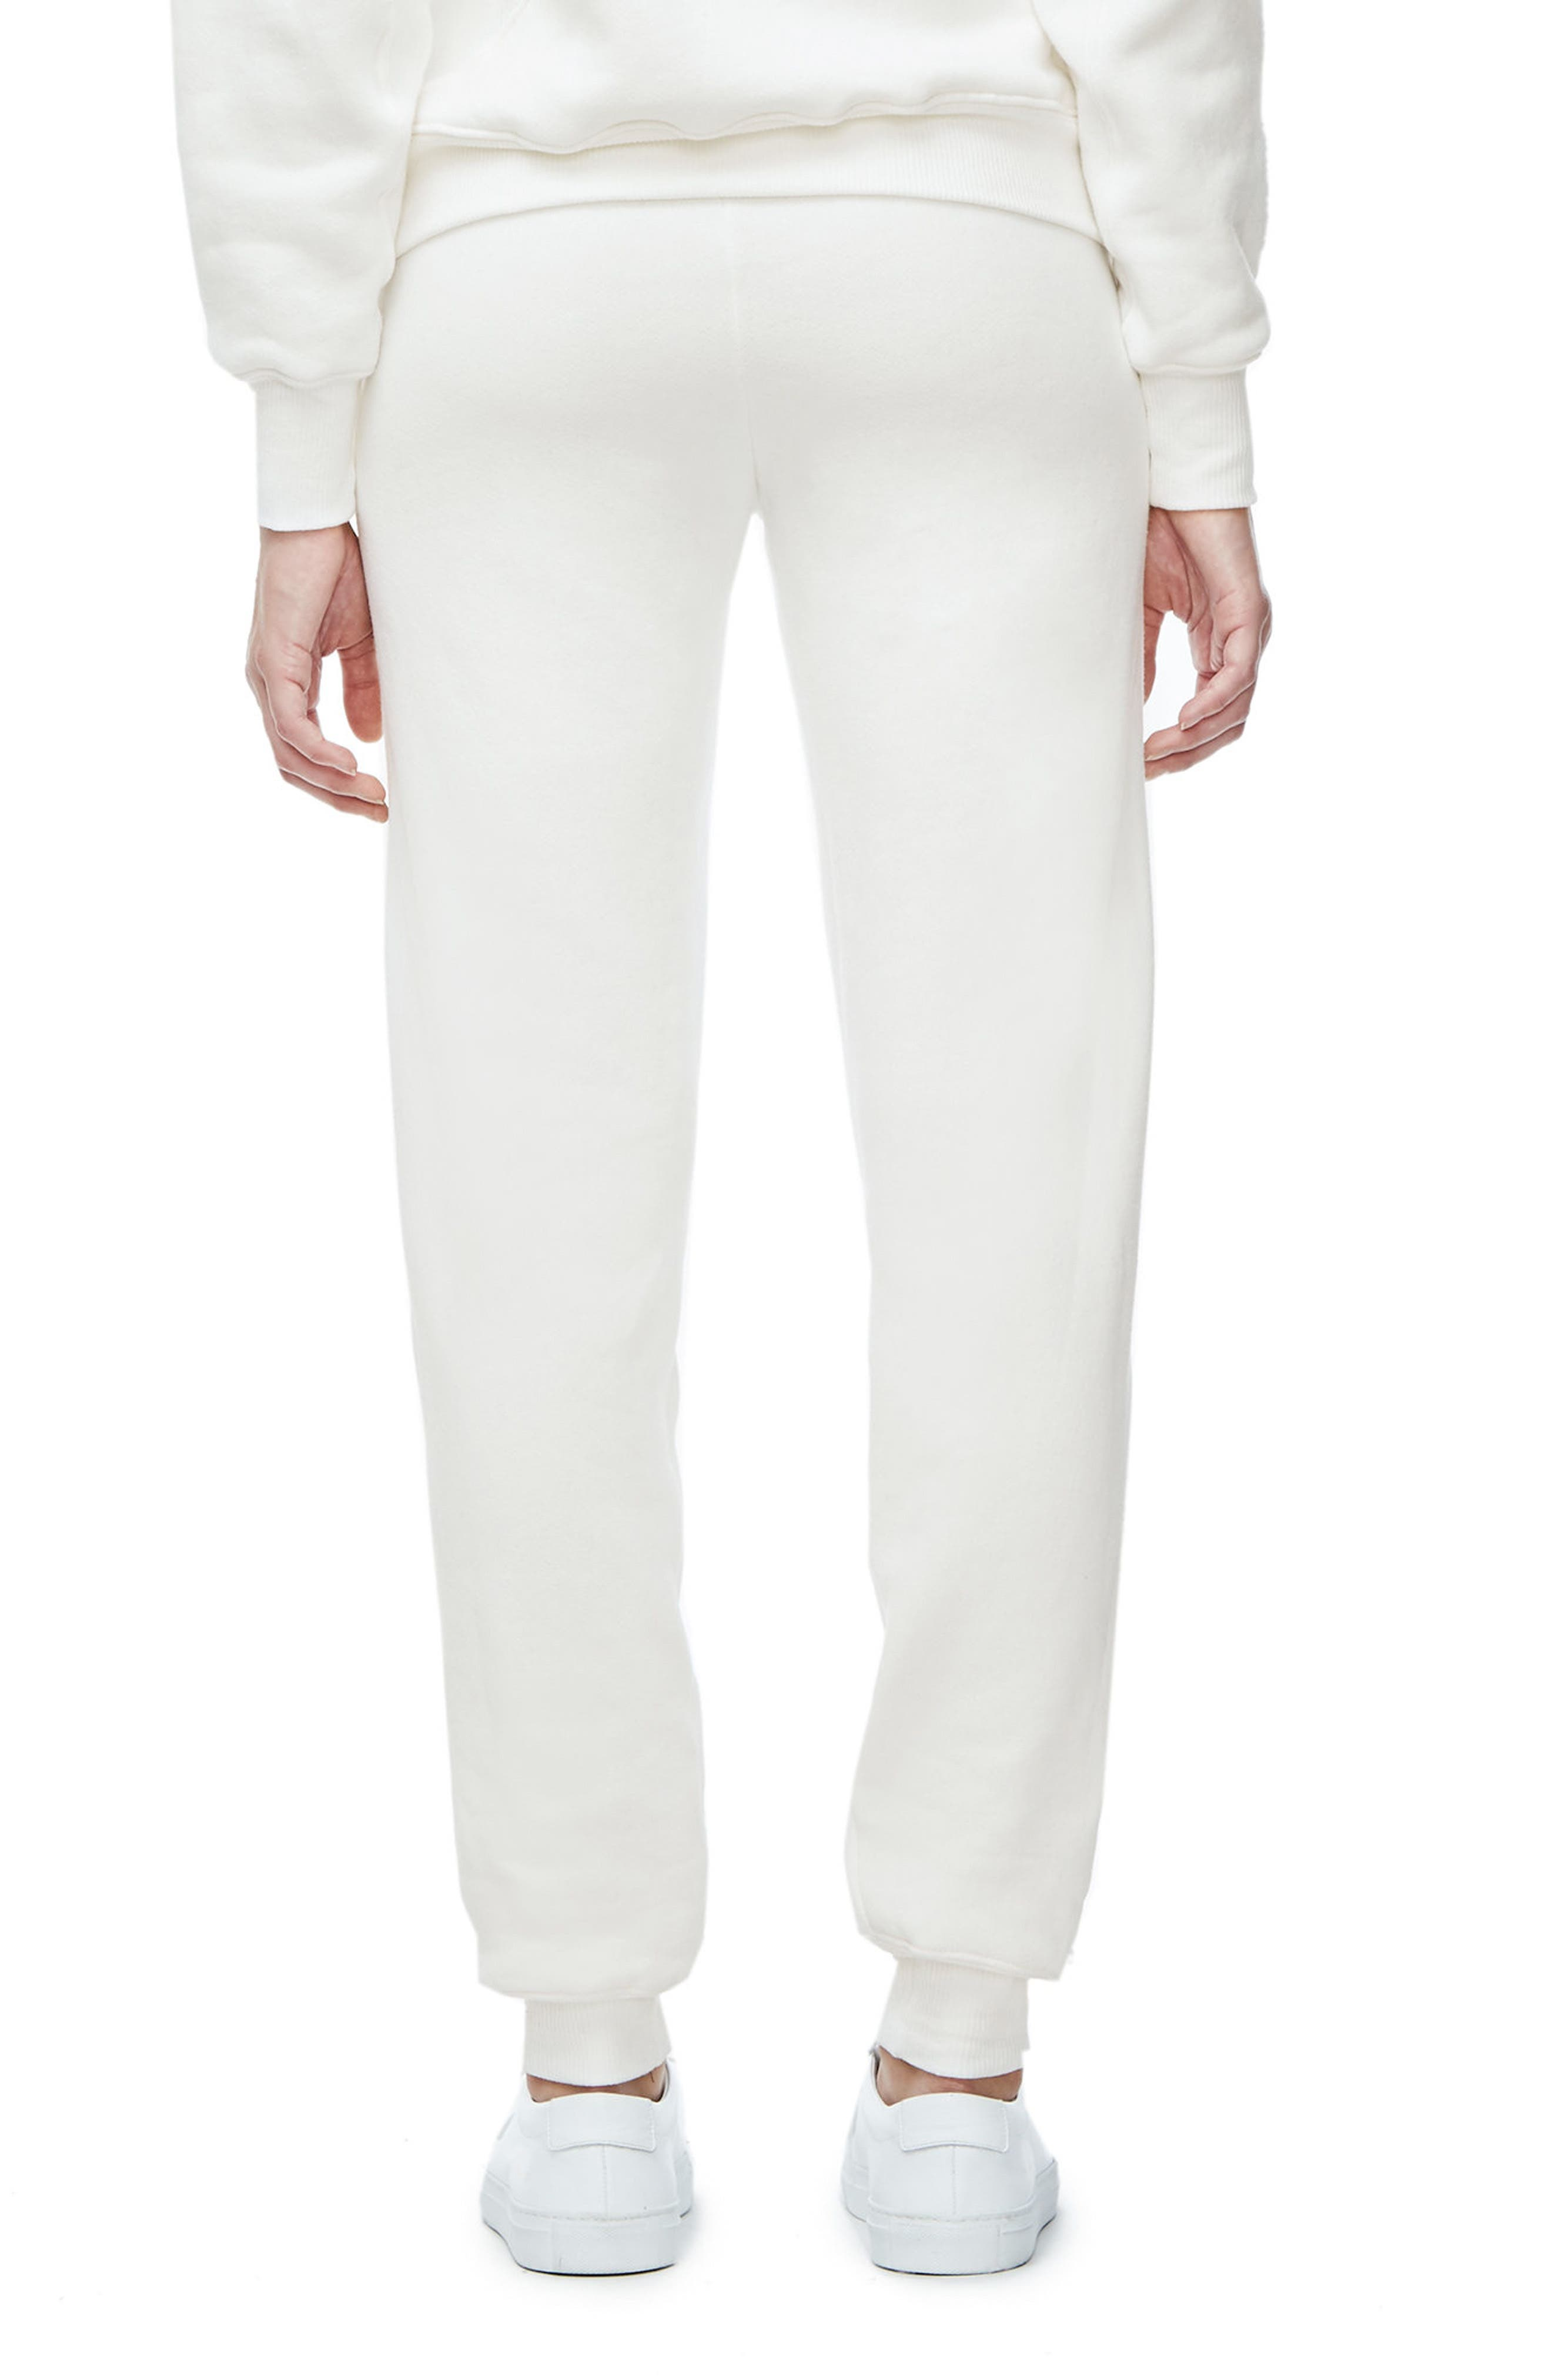 Good Sweats The Twisted Seam Pants,                             Alternate thumbnail 2, color,                             Off White